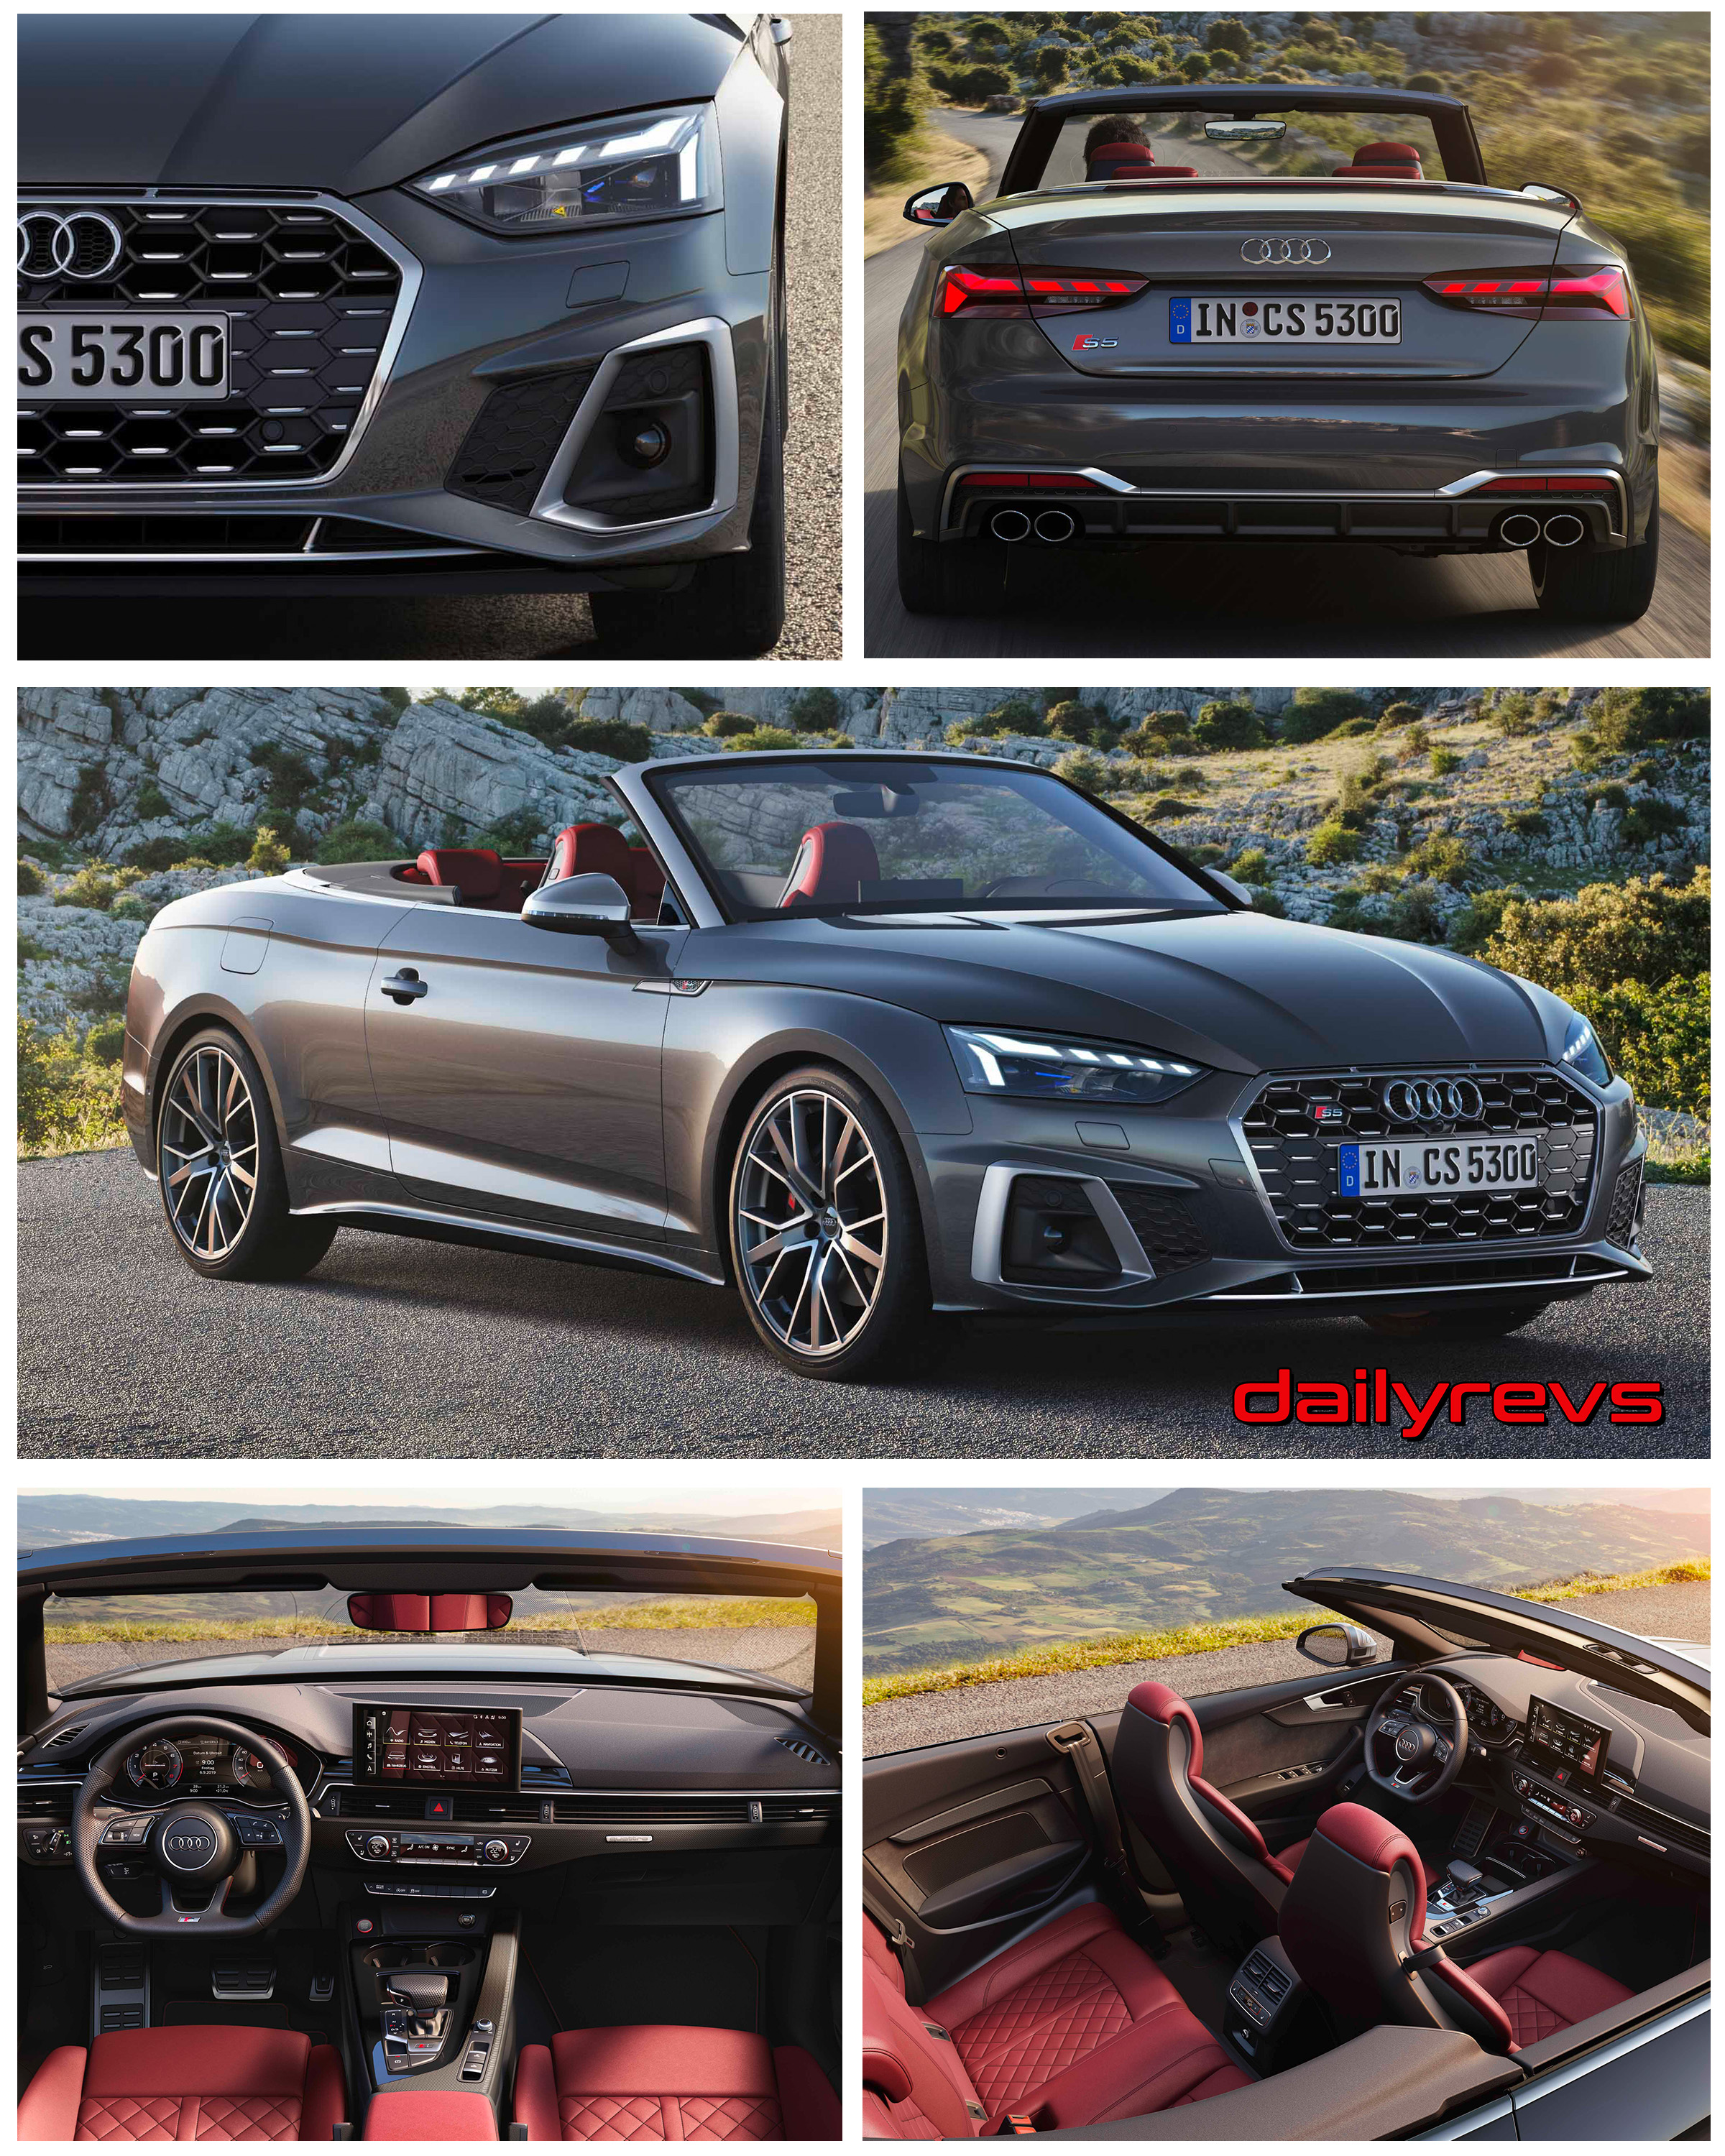 2020 Audi S5 Cabriolet Tfsi Hd Pictures Videos Specs Information Dailyrevs